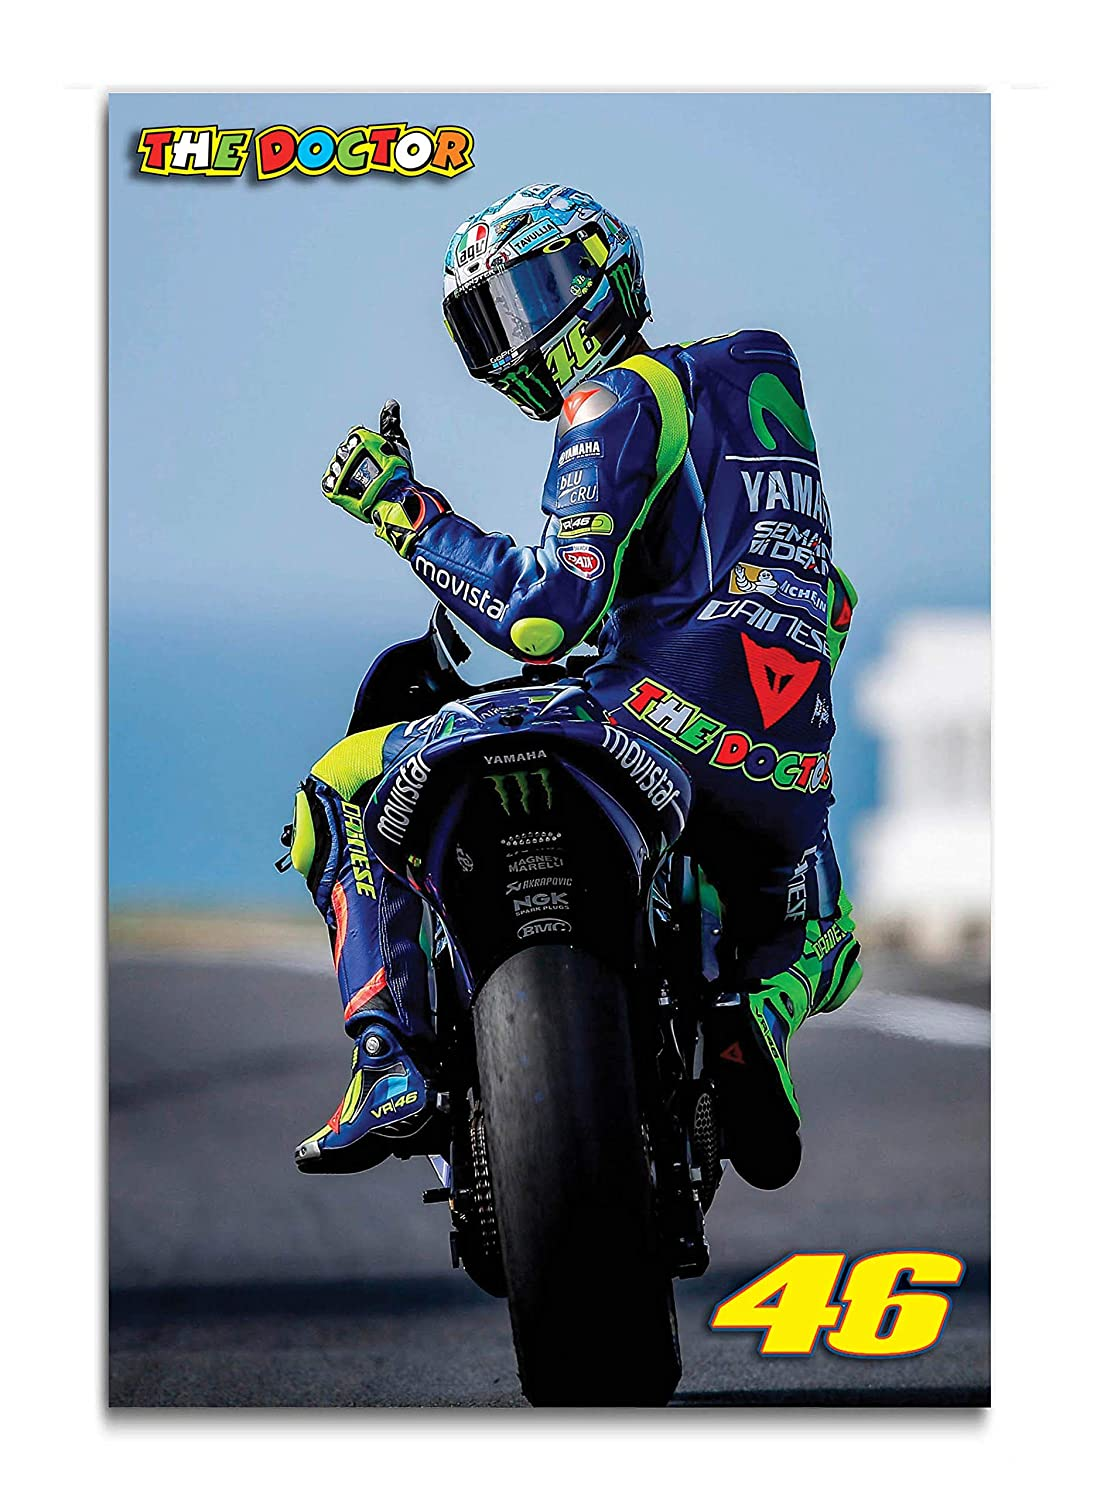 Tamatina Moto Gp Posters Super Bike Posters Valentino Rossi Cafe Posters Hostel Posters Bar Posters Grand Prix Large 3ft X 2ft 92 Cms X 61 Cms P96 Amazon In Home Kitchen